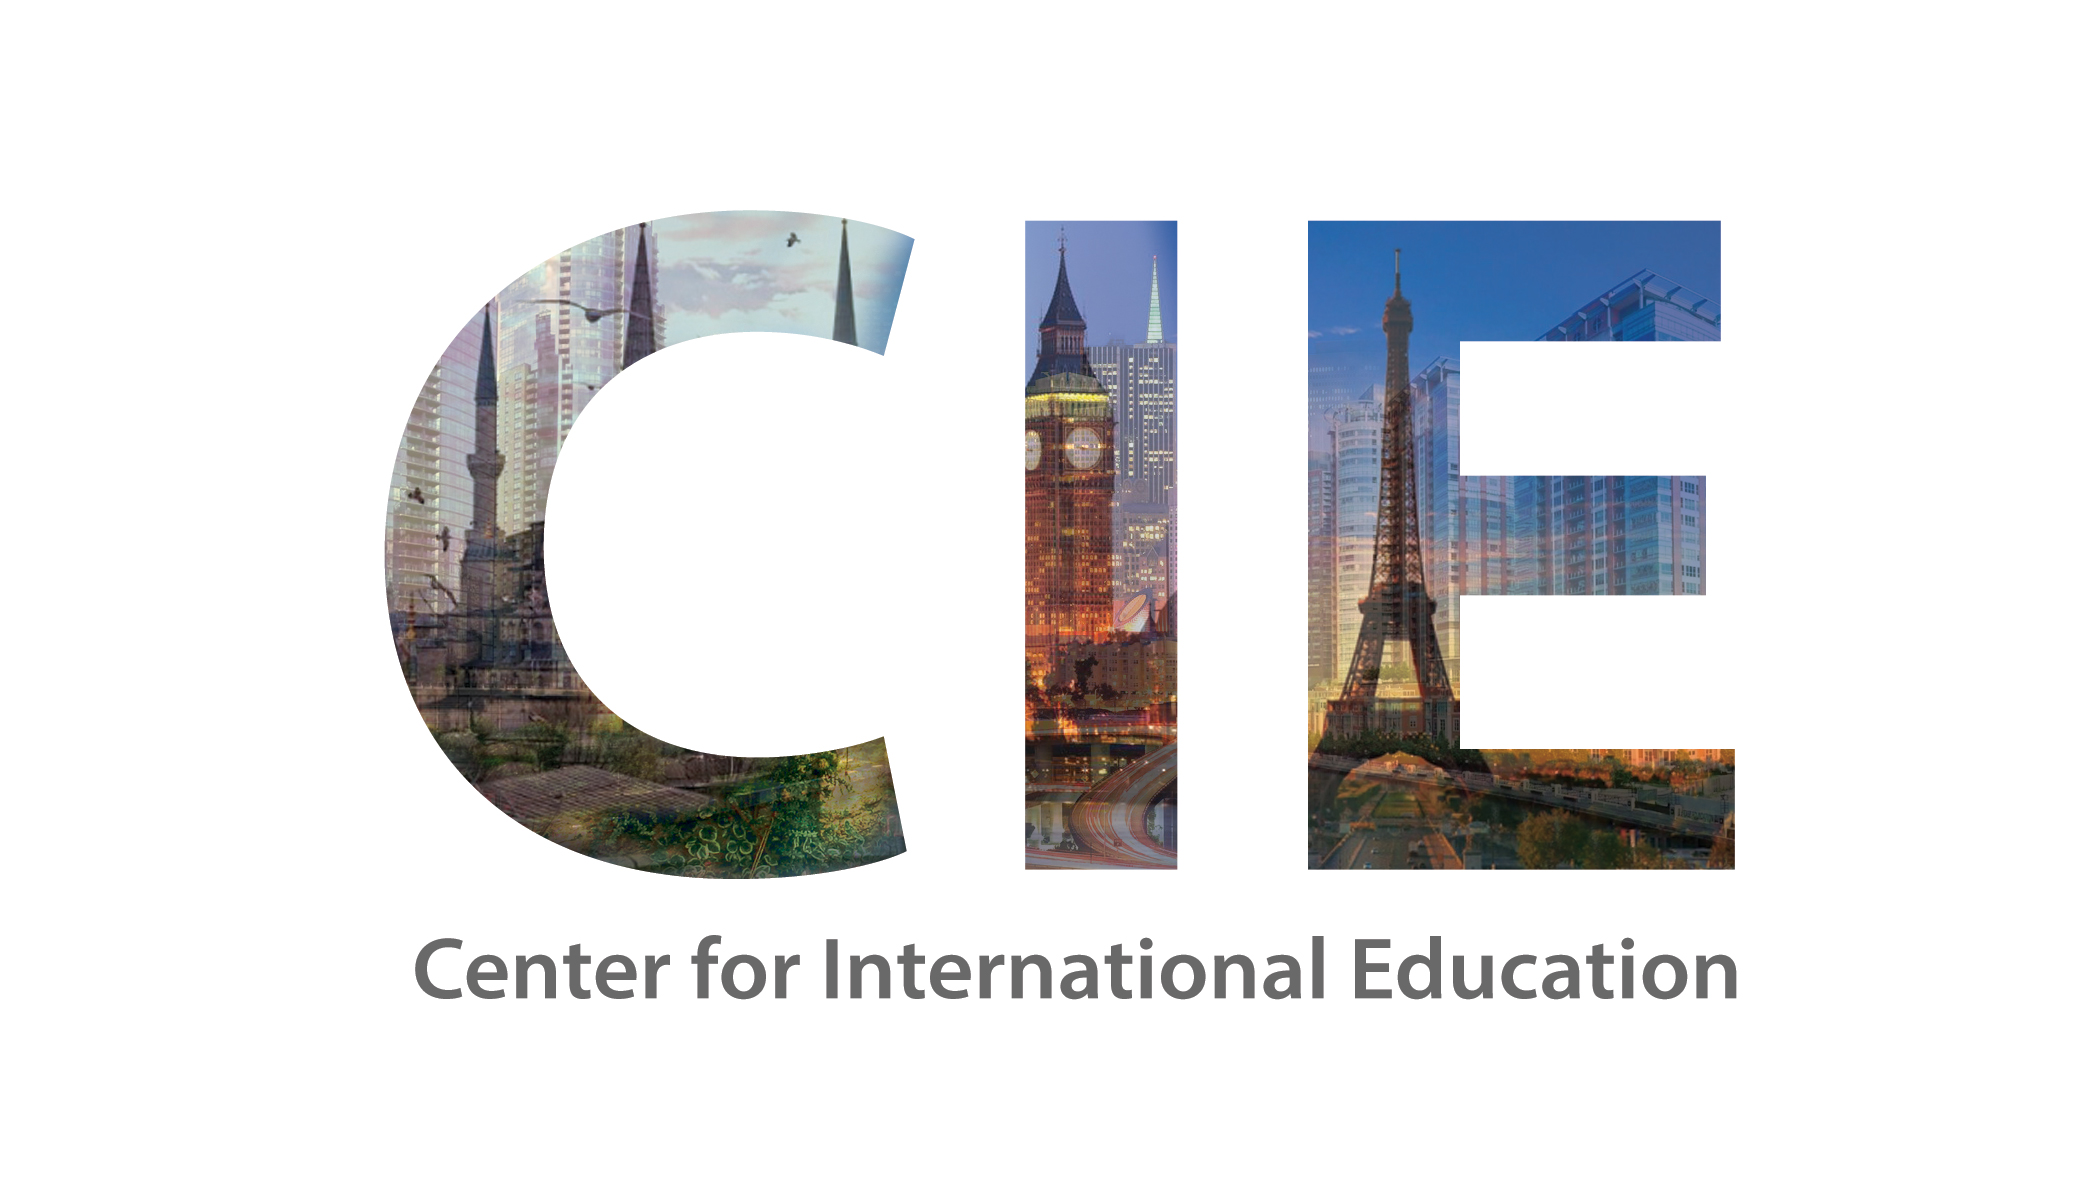 Center for International Education